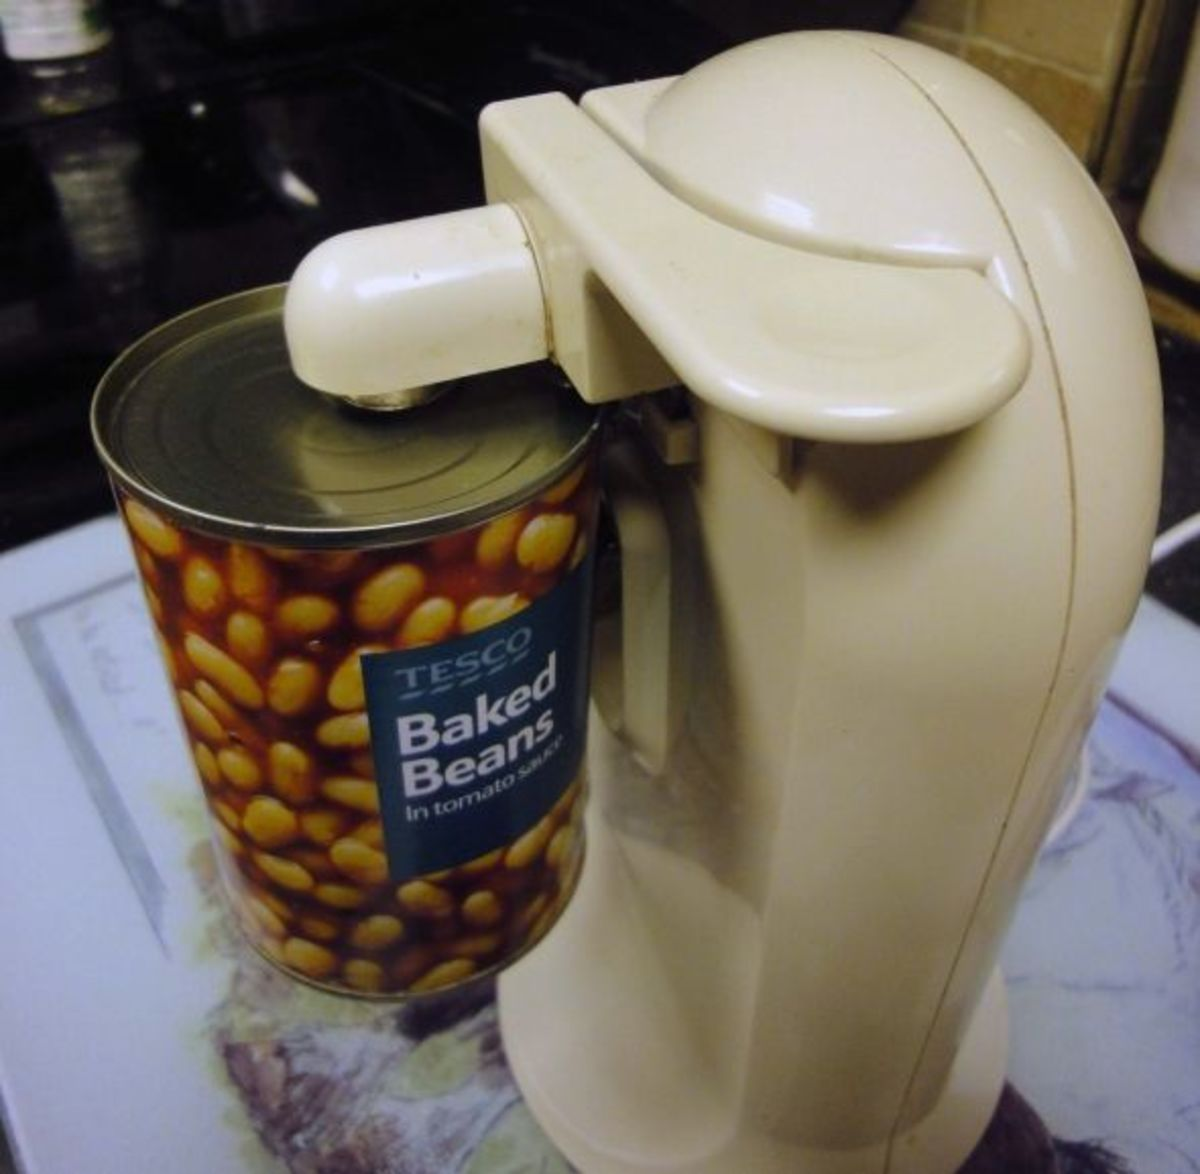 Firmly holding tinned food in electric can opener